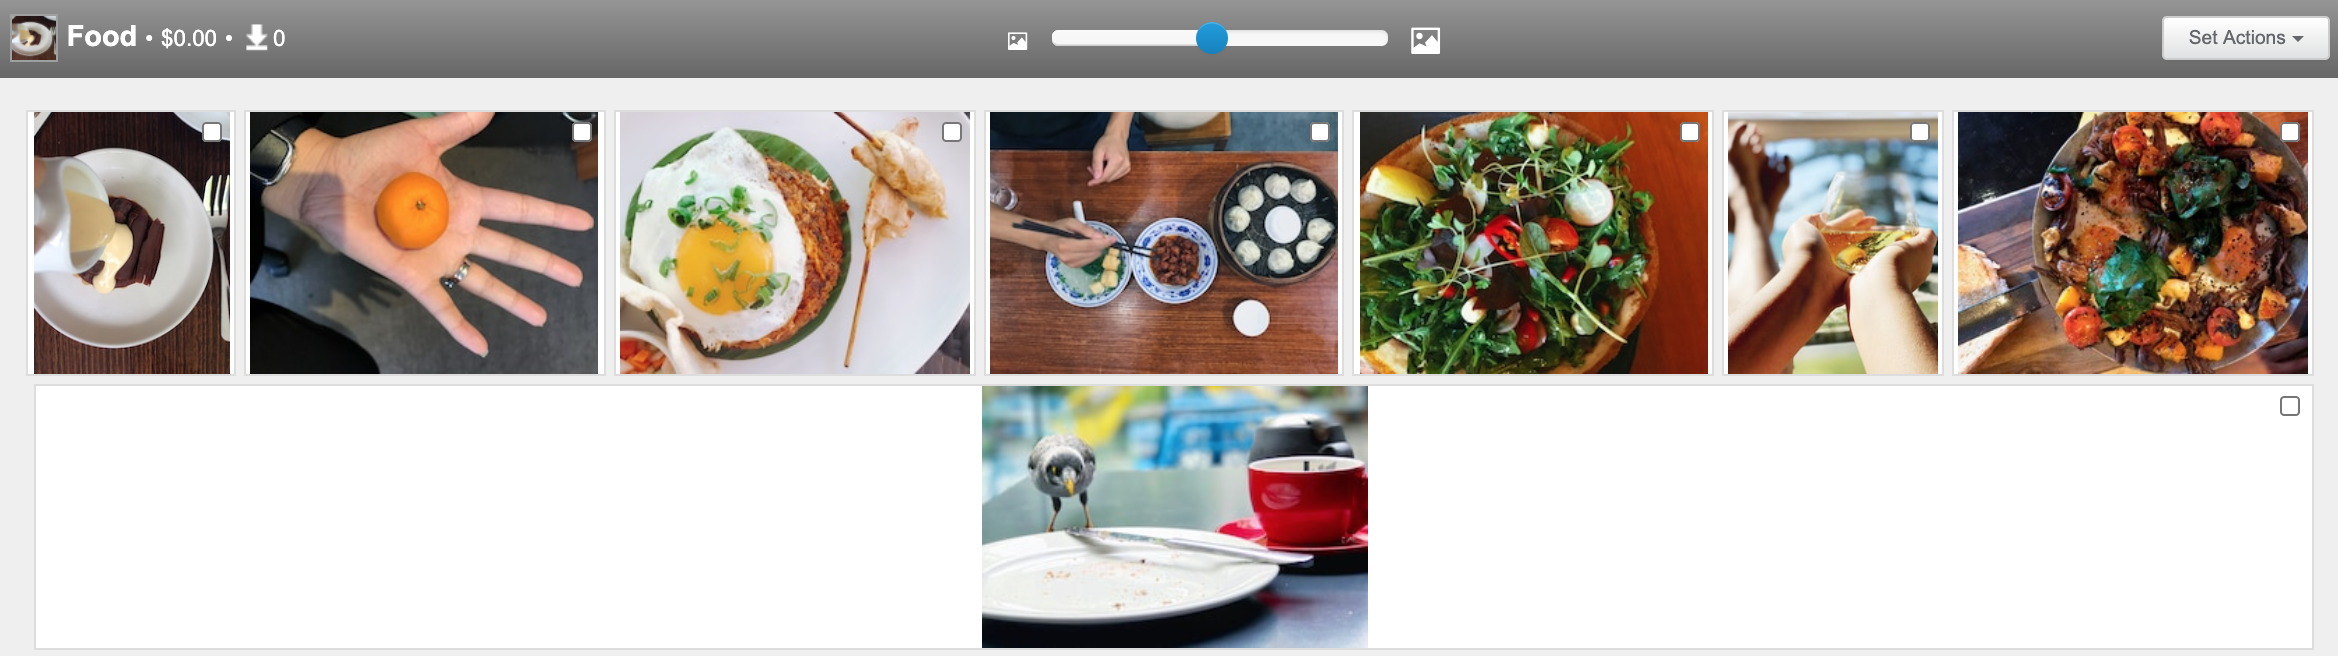 Food stock photography on shutterstock